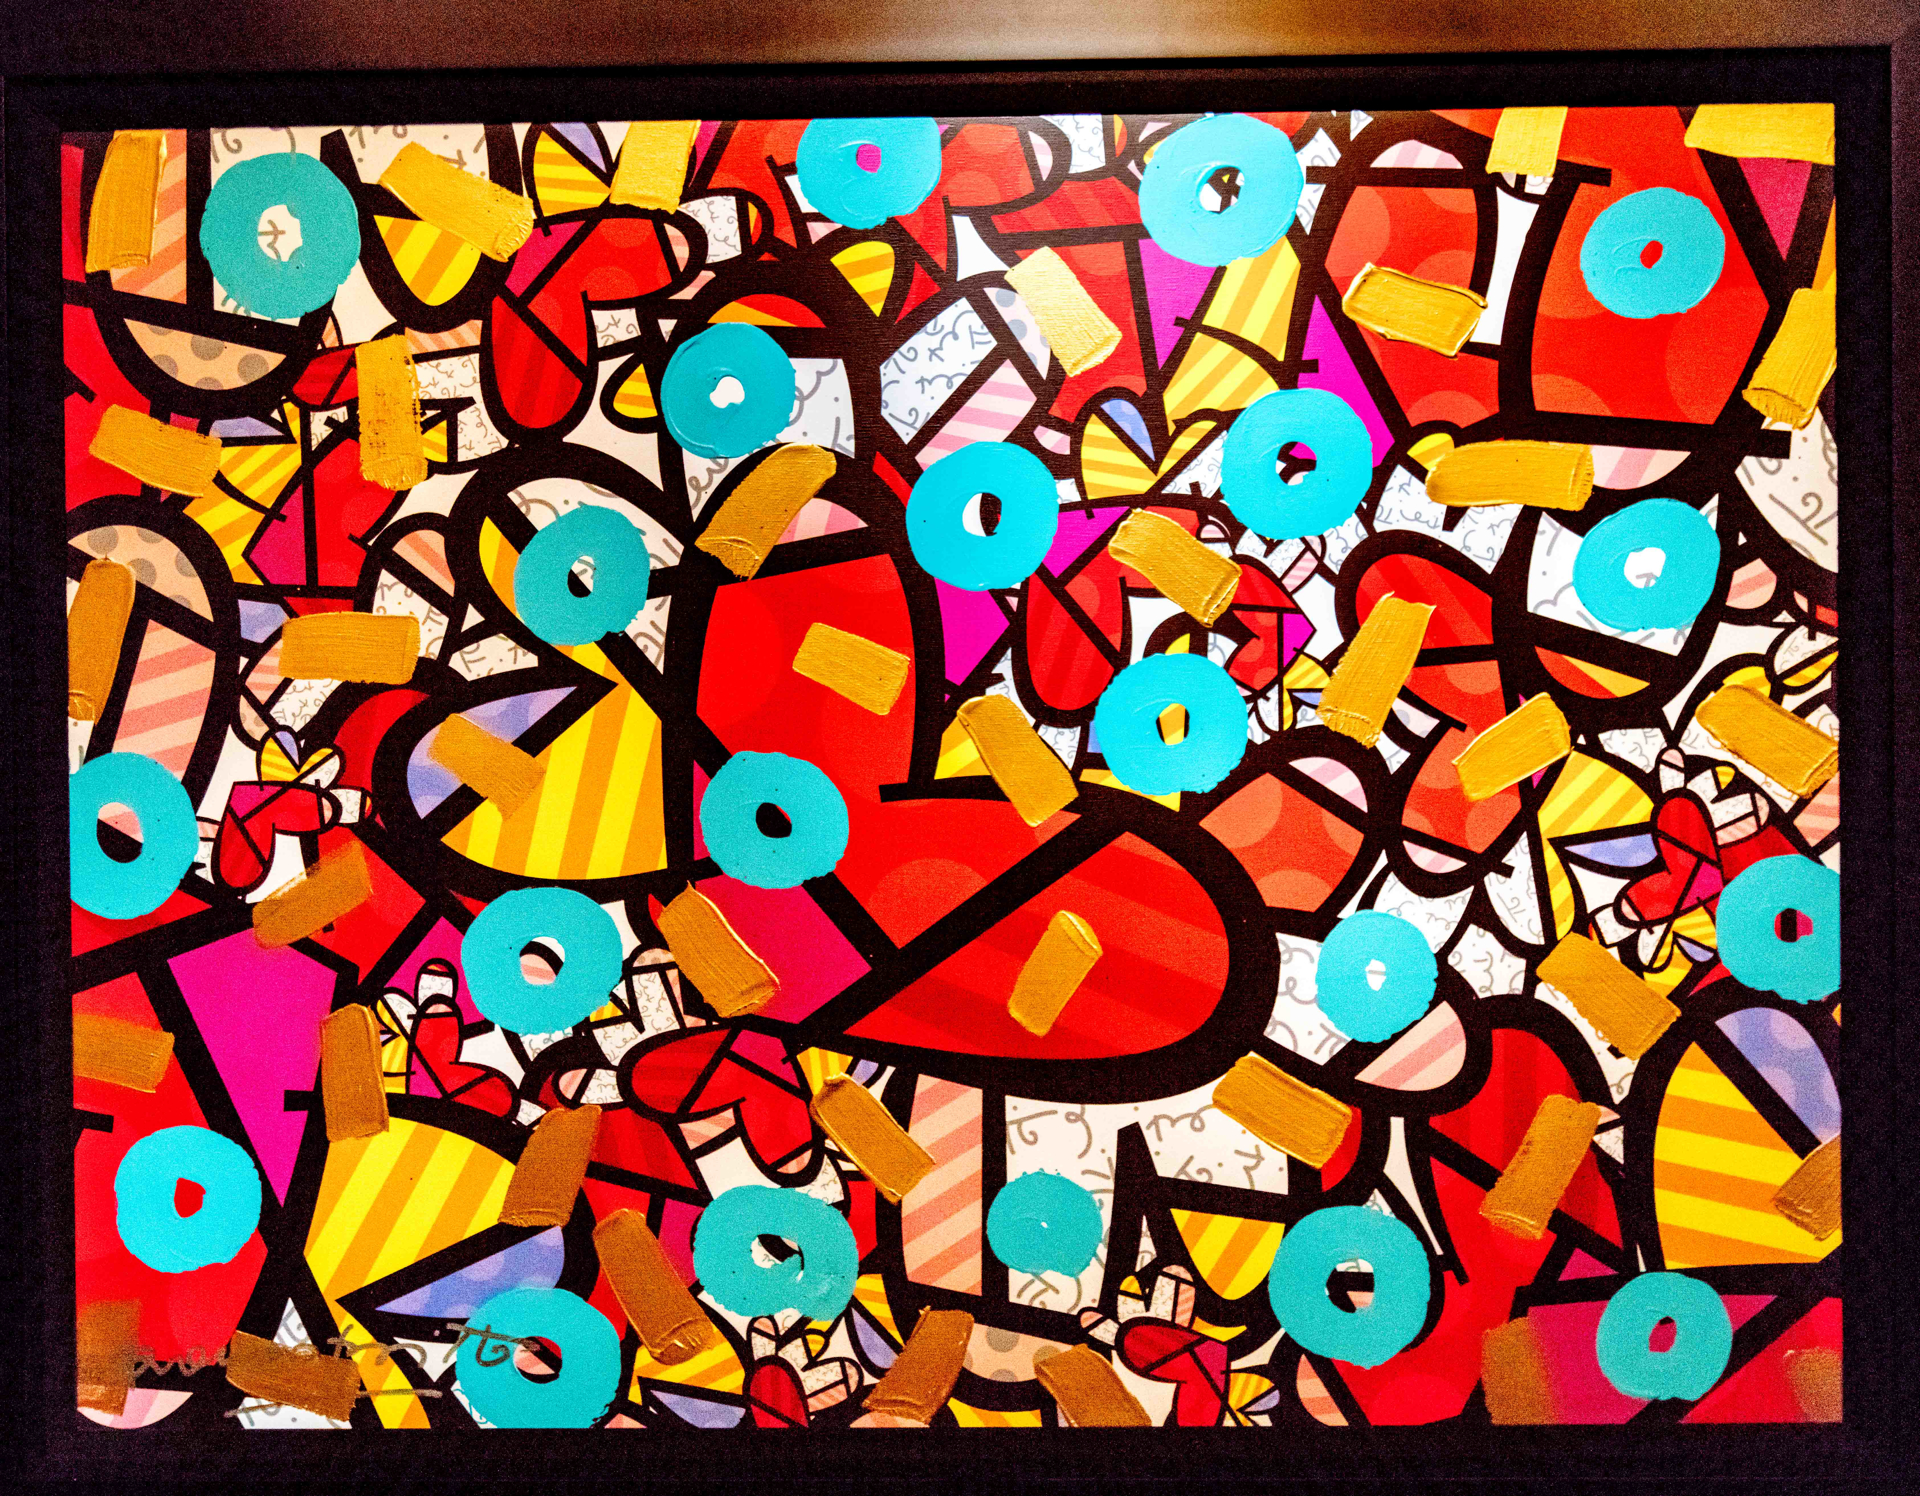 PARTY TIME by Romero Britto